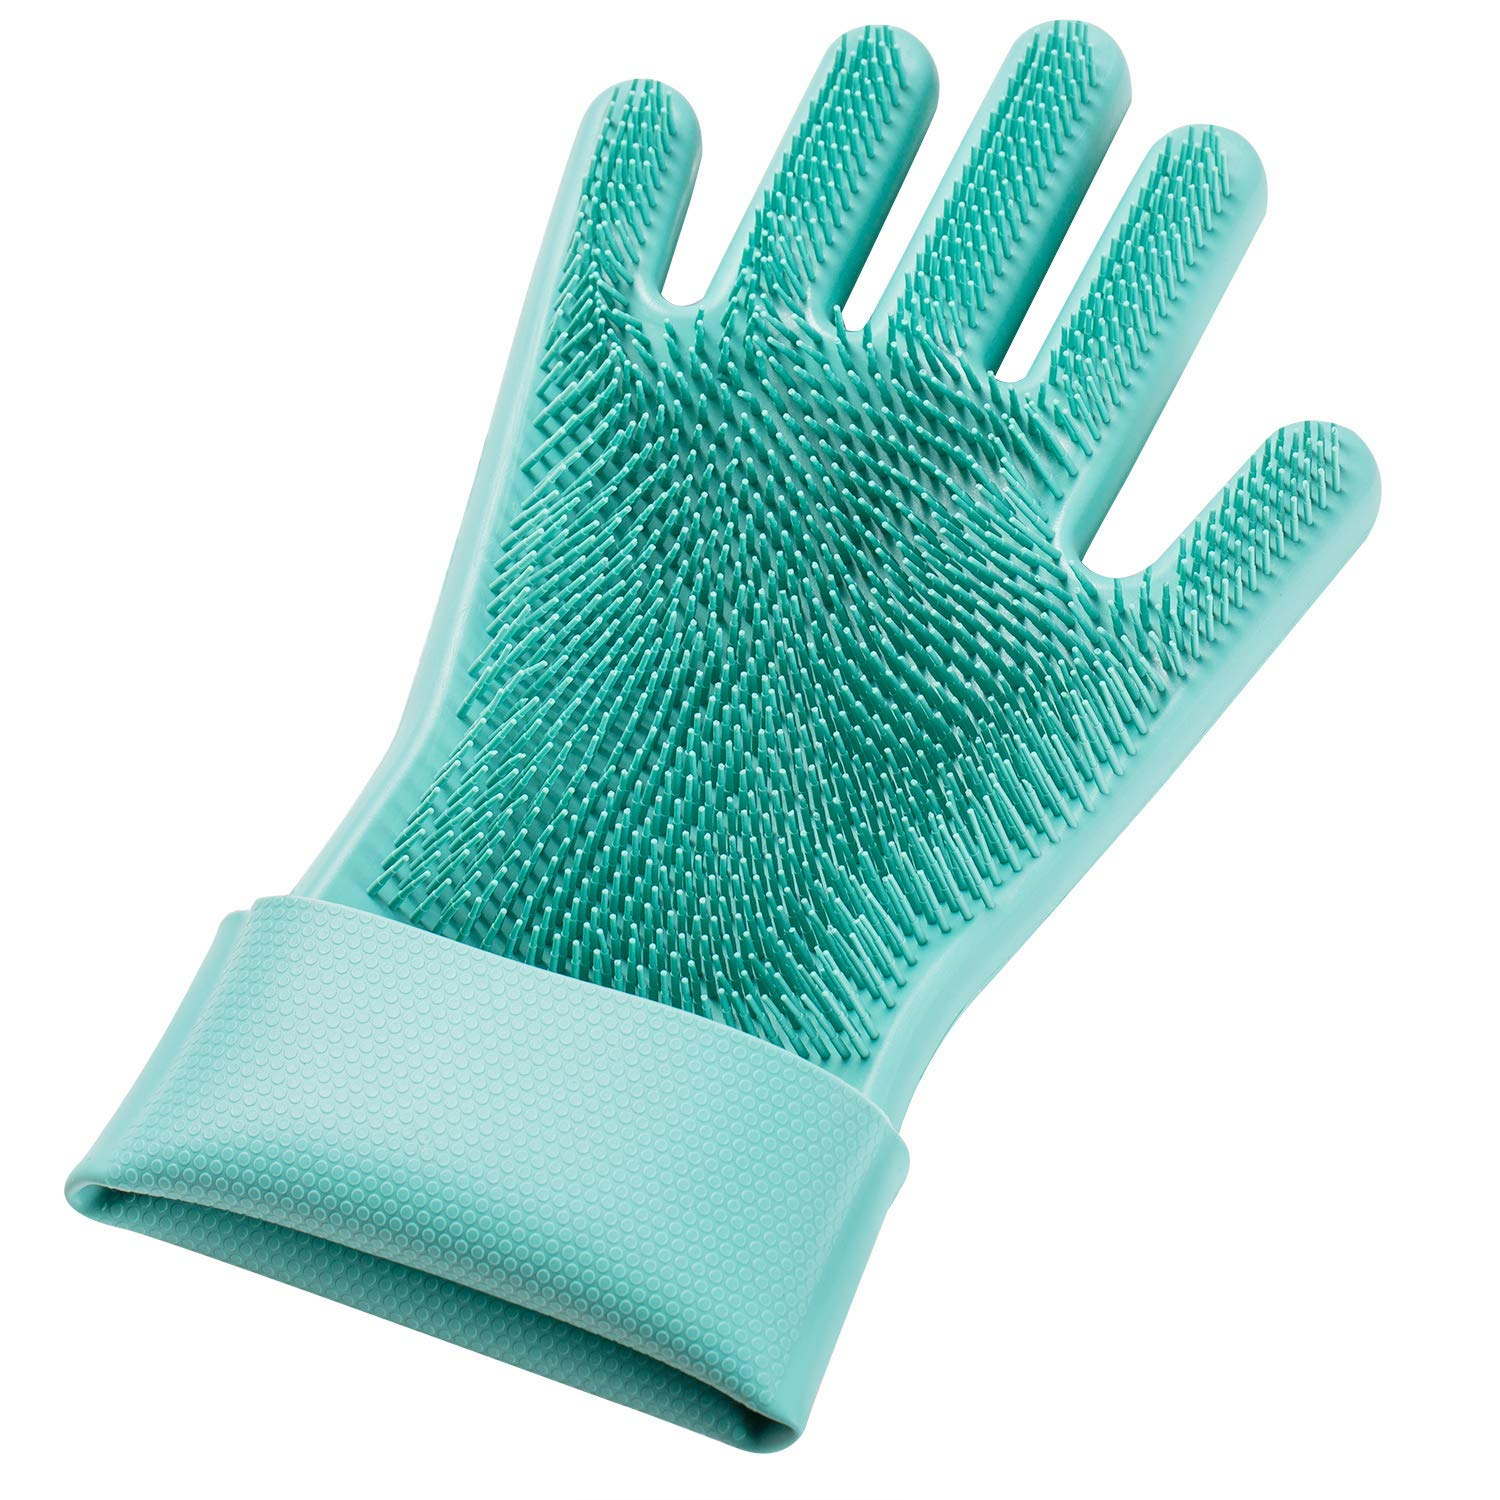 LETOOR Silicone Reusable Brush Heat Resistant Scrub Rubber Glove for Dish Cleaning Kitchen Household Washing Blue 14 IN